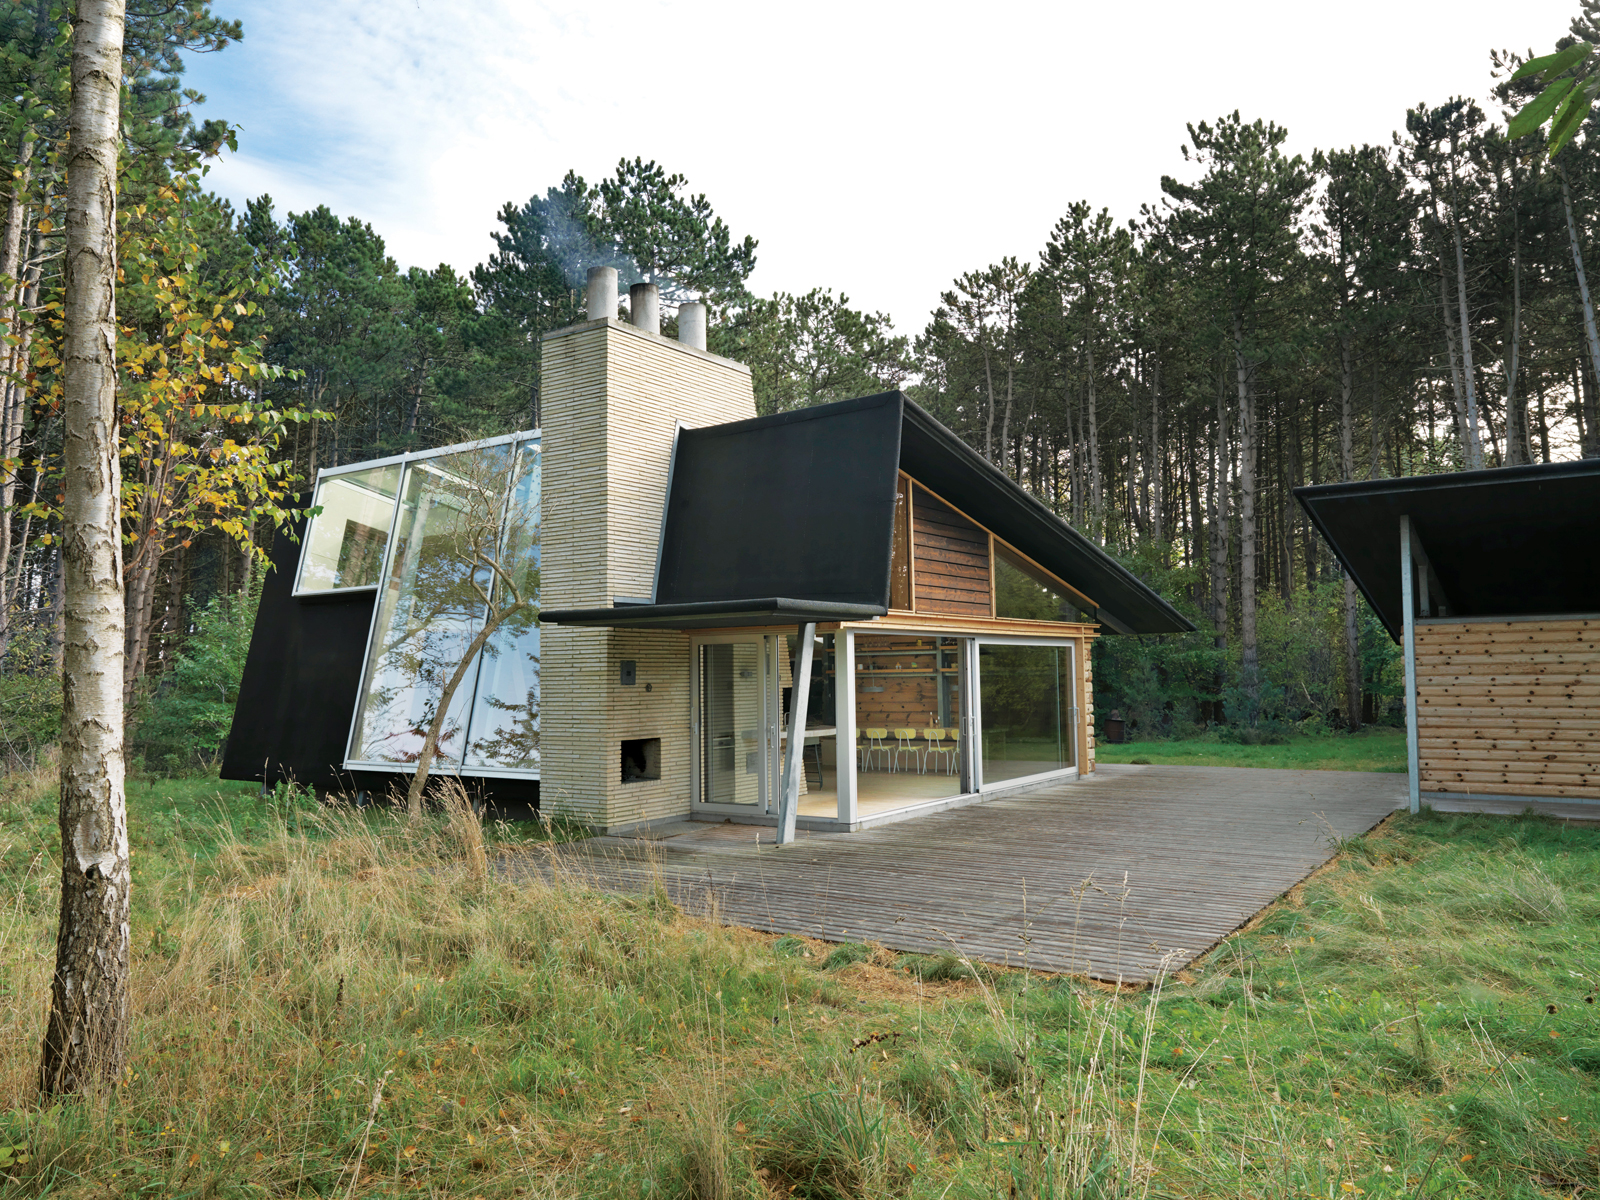 Danish summer house designed by Jesper Brask.